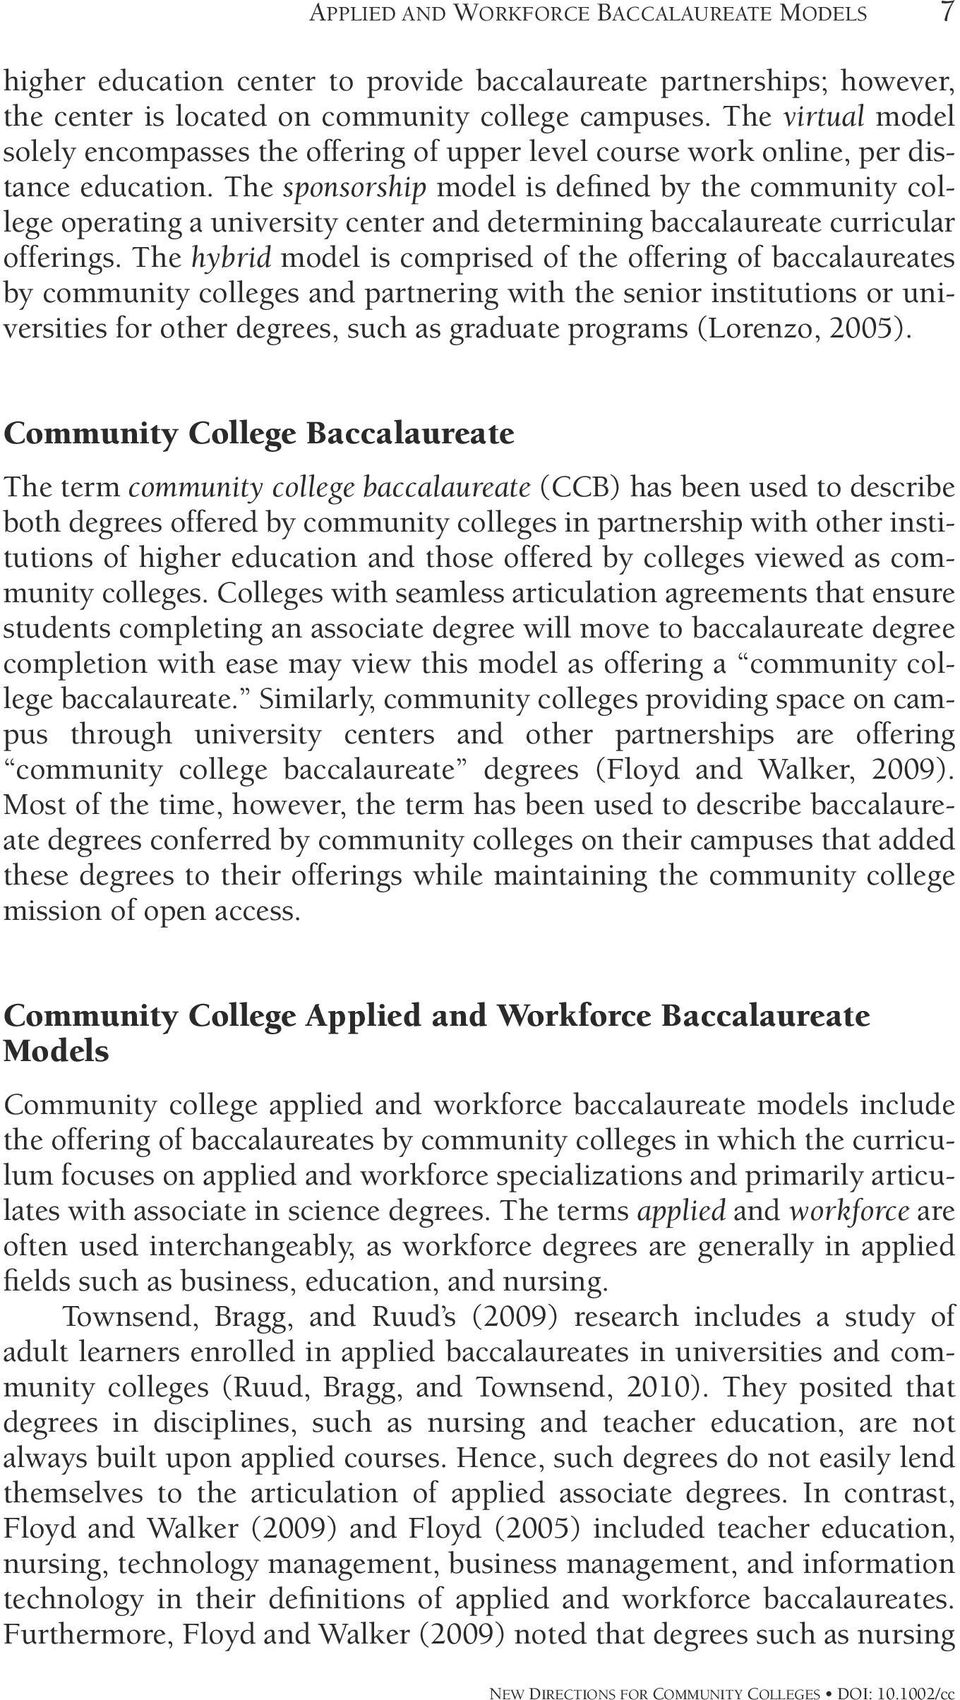 The sponsorship model is defined by the community college operating a university center and determining baccalaureate curricular offerings.